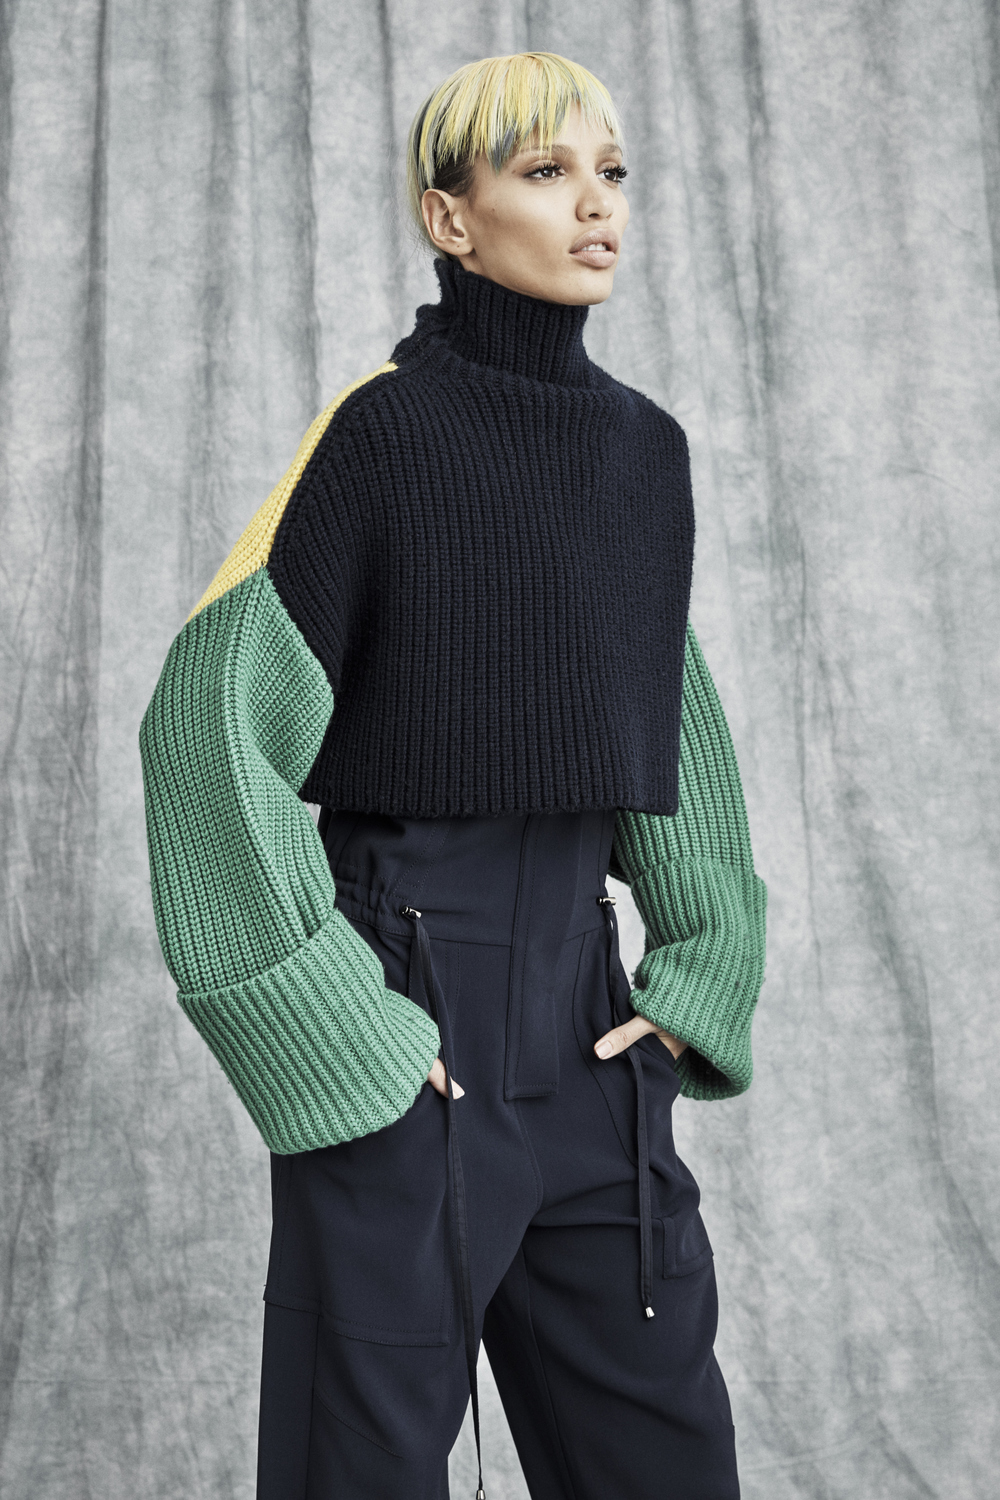 VICTOR_ALFARO_PreSpring17_Look_22_by_Jeremy_Williams.jpg